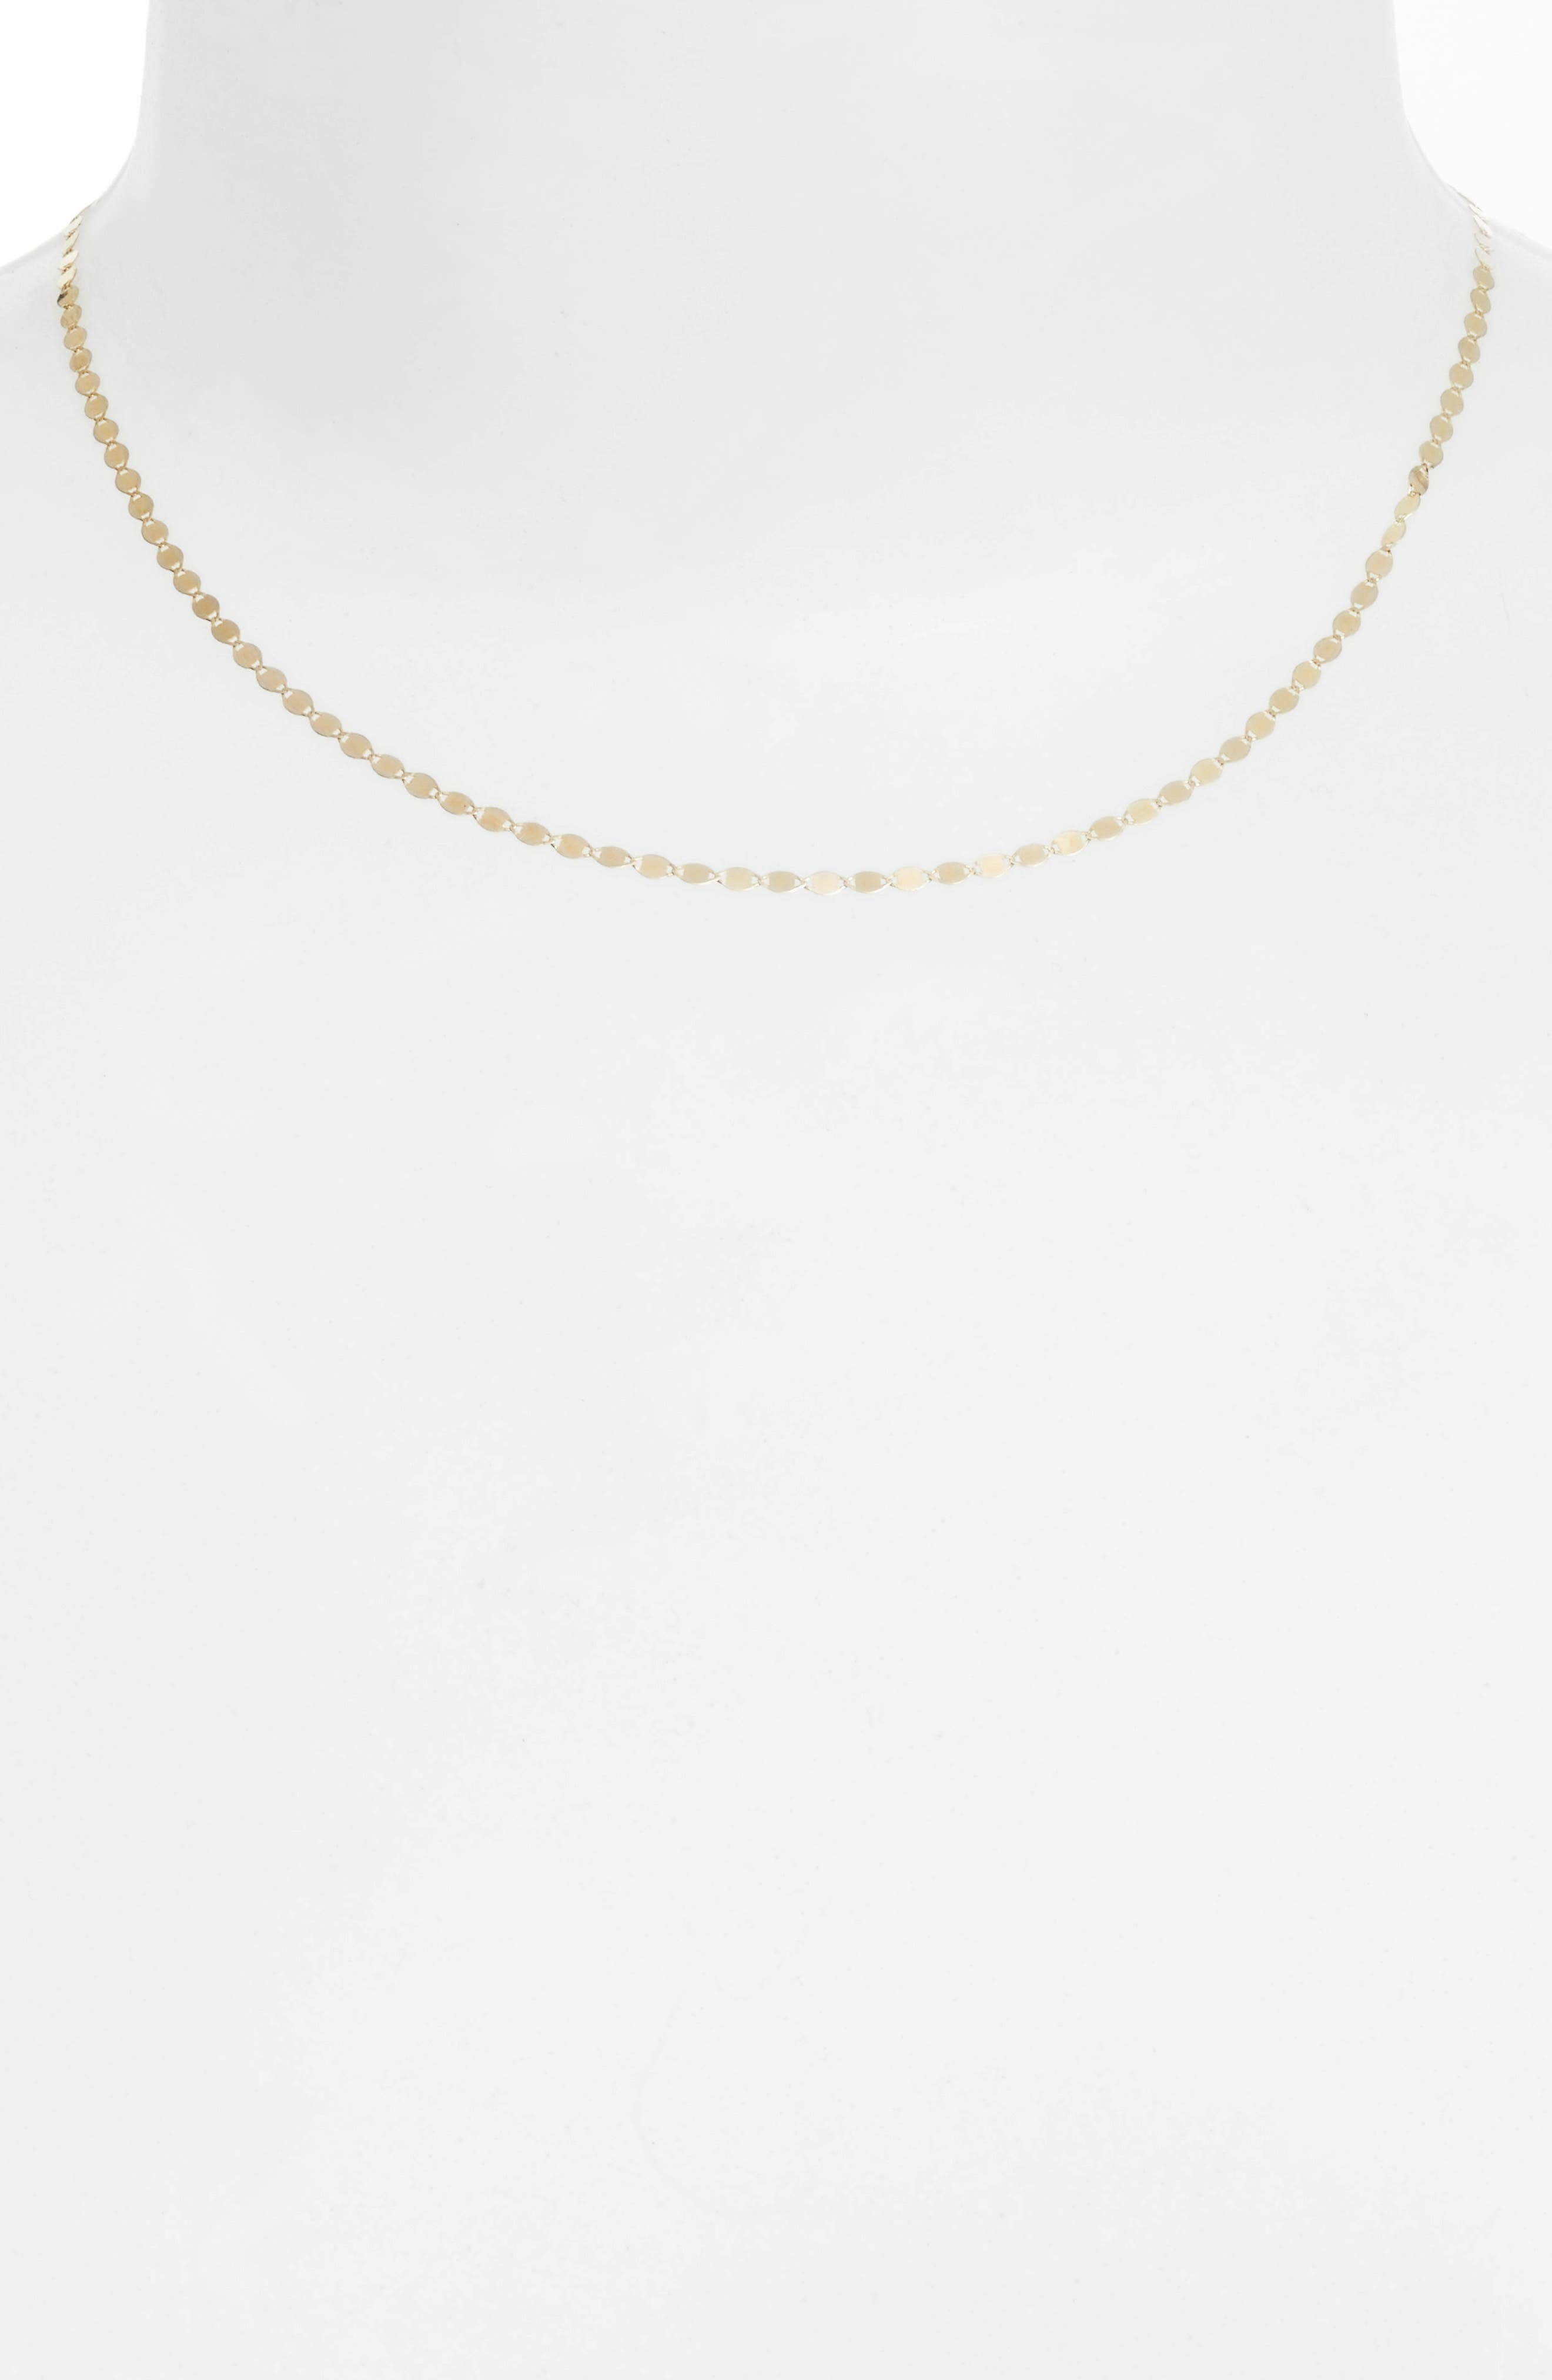 Petite Nude Chain Choker,                             Main thumbnail 1, color,                             Yellow Gold